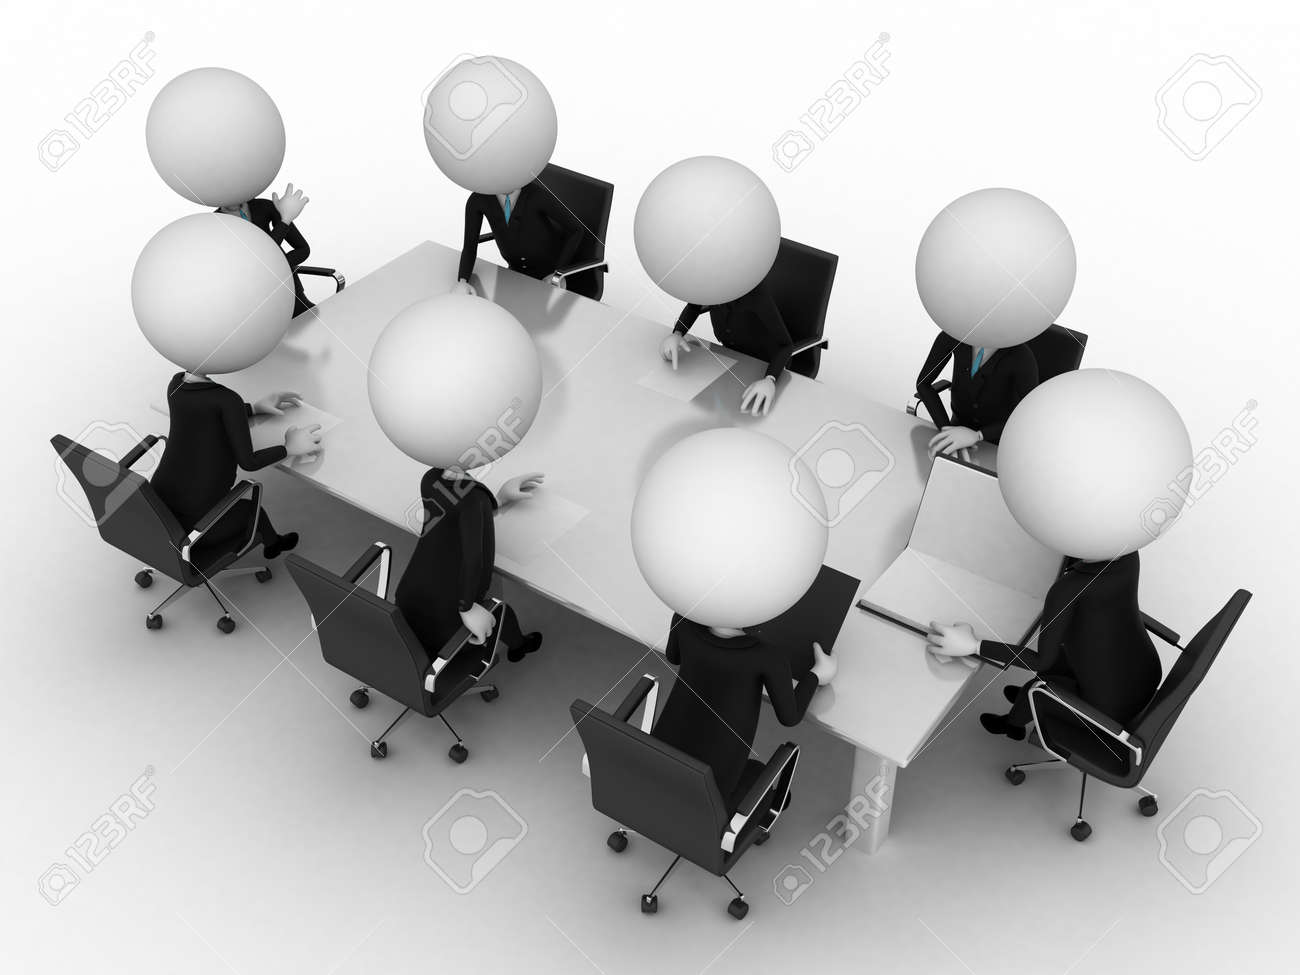 3d rendering of a group of little guys - conference table Stock Photo - 11023535